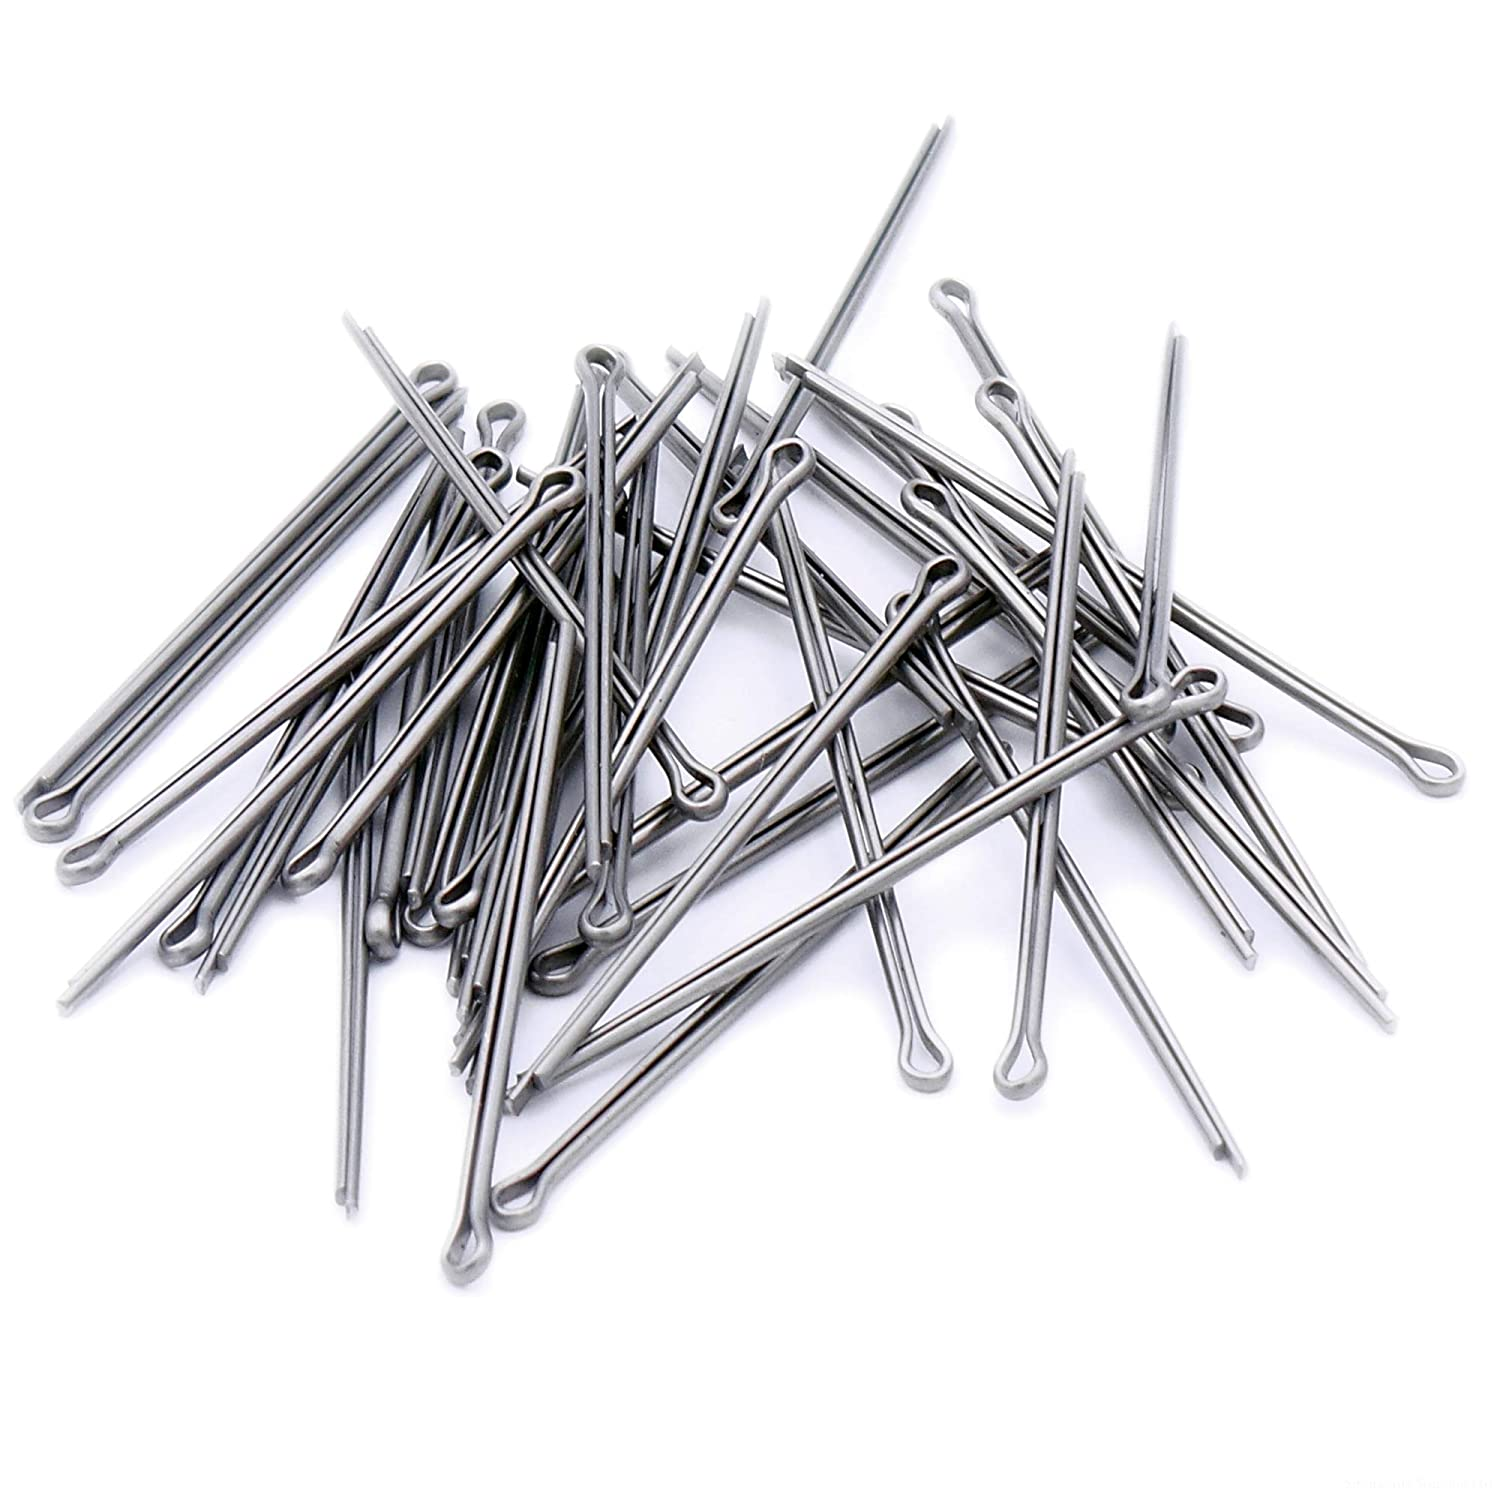 1.6mm x 40mm Split Cotter Pins - Stainless Steel (A2) (Pack of 40) Singularity Supplies Ltd